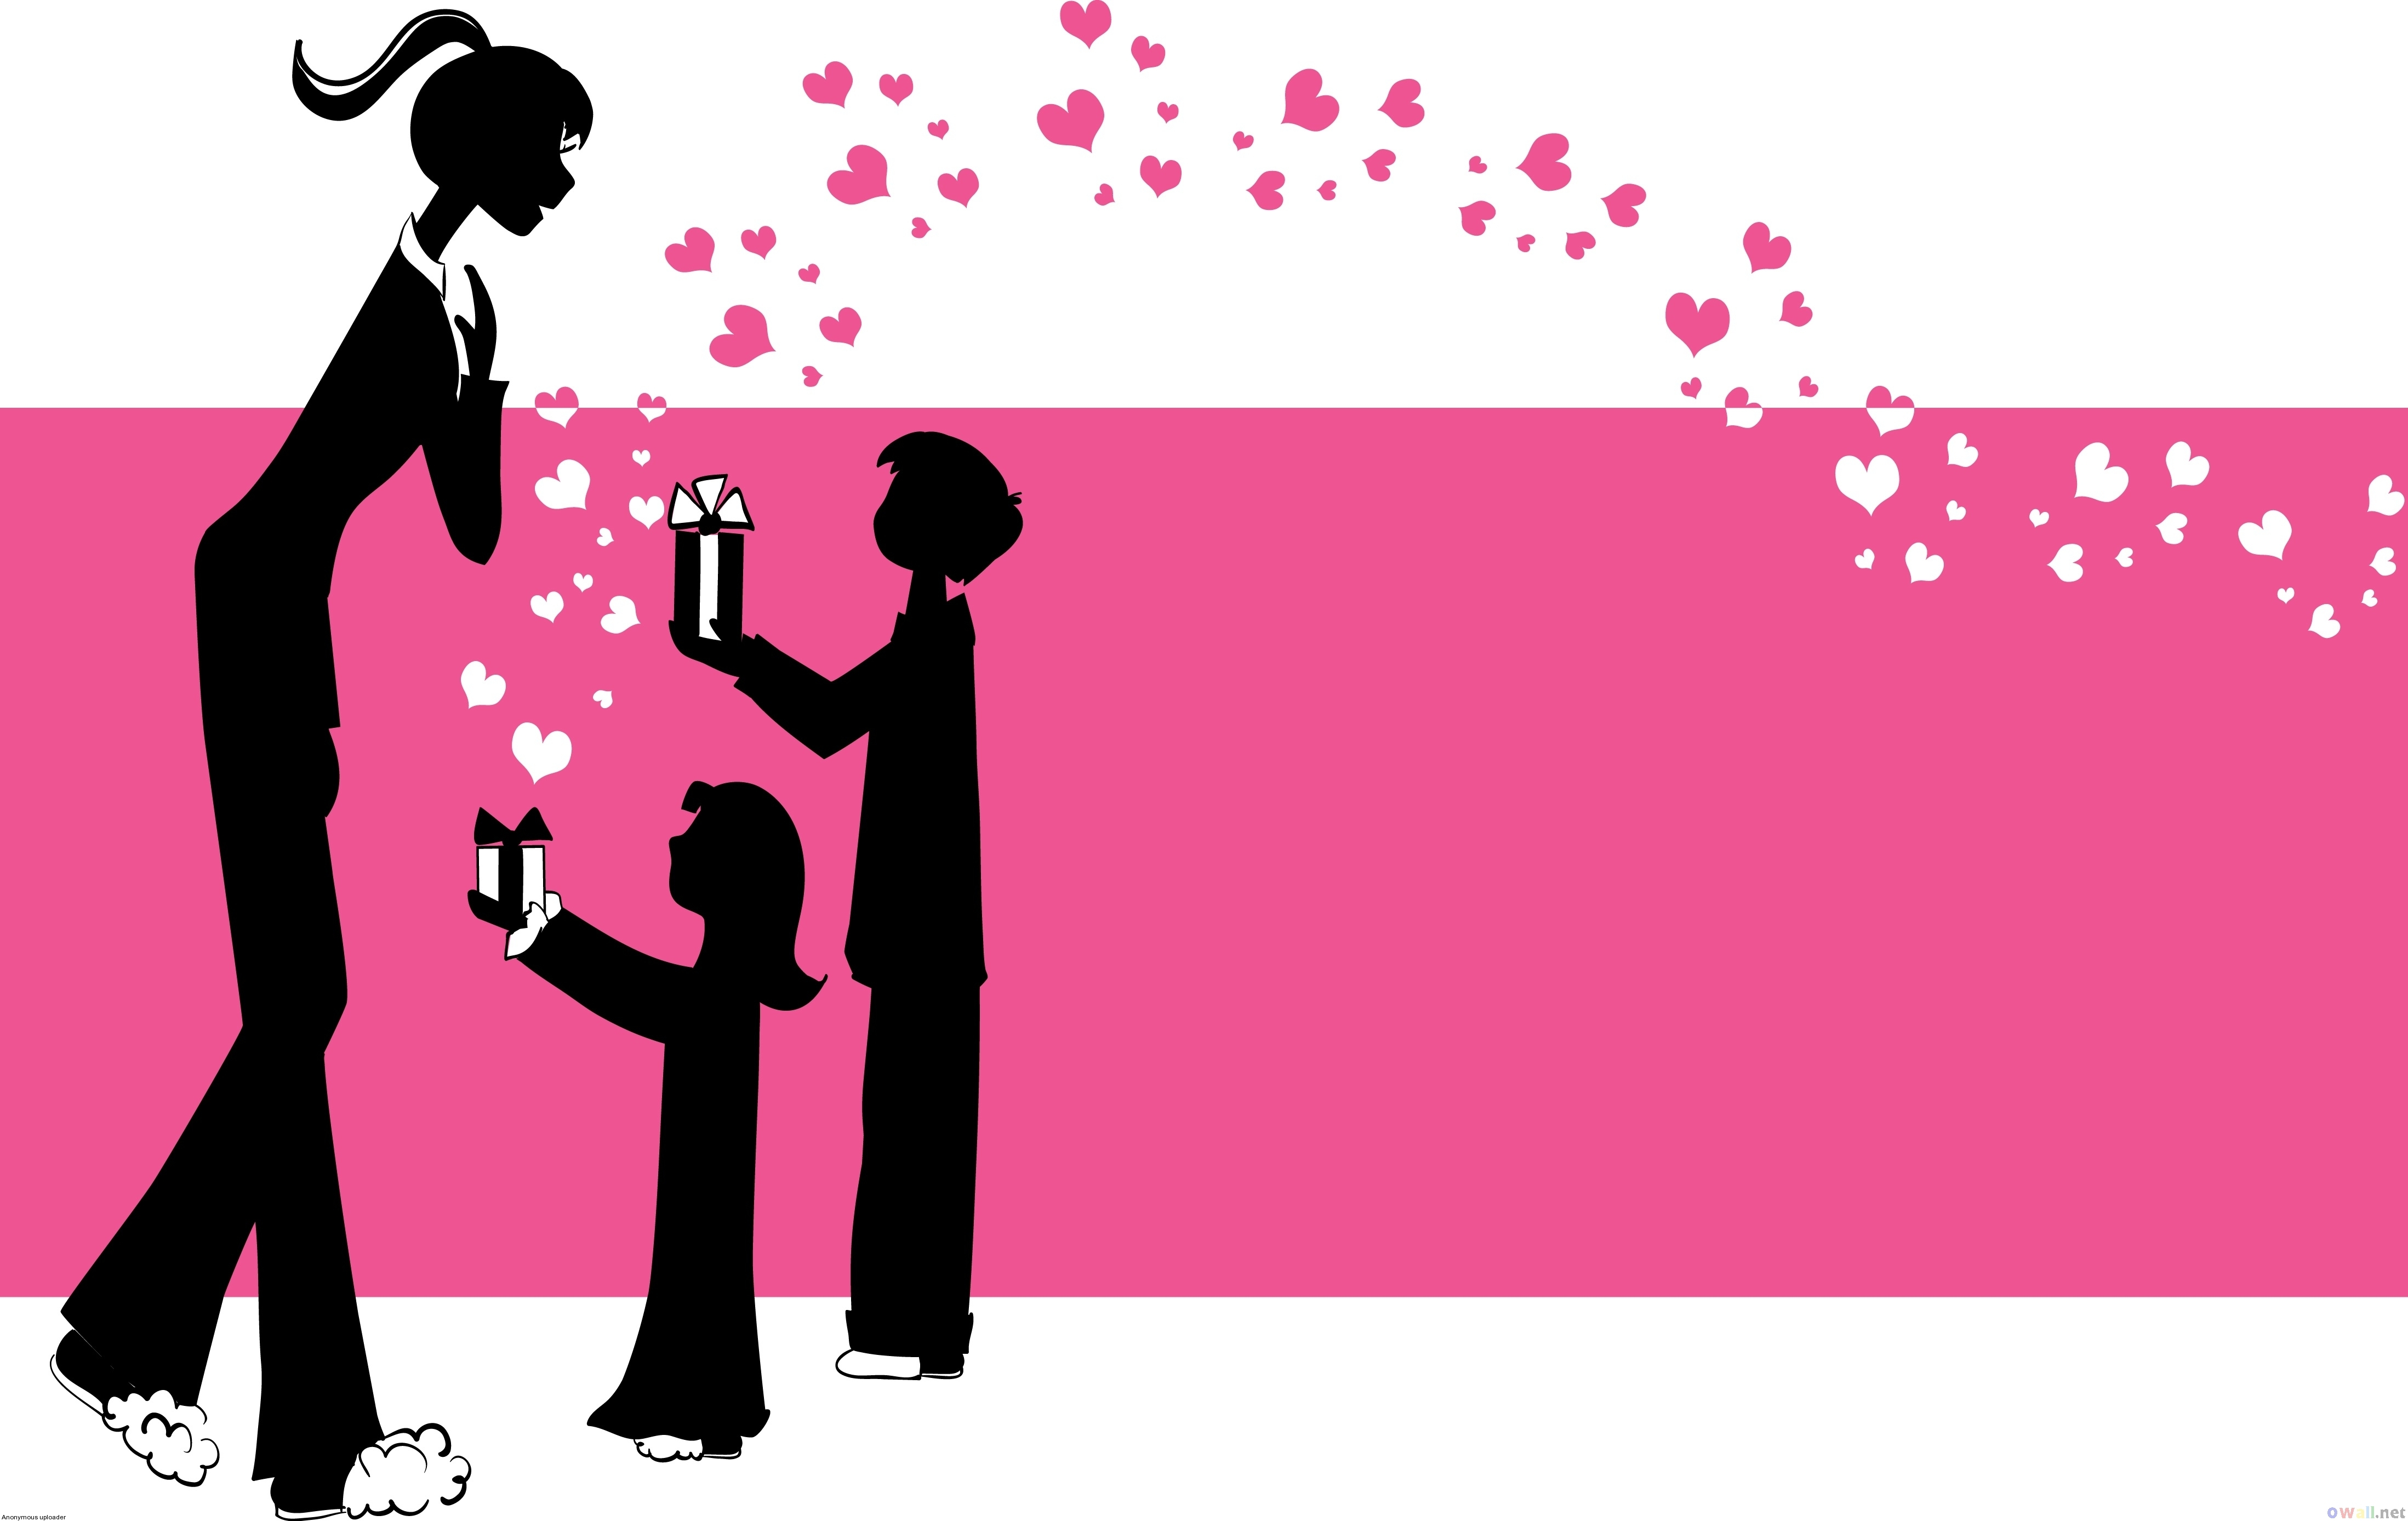 2015-05-06-1430929887-5604339-LatestHappyMothersDay2015HDImagesforWhatsappinPink